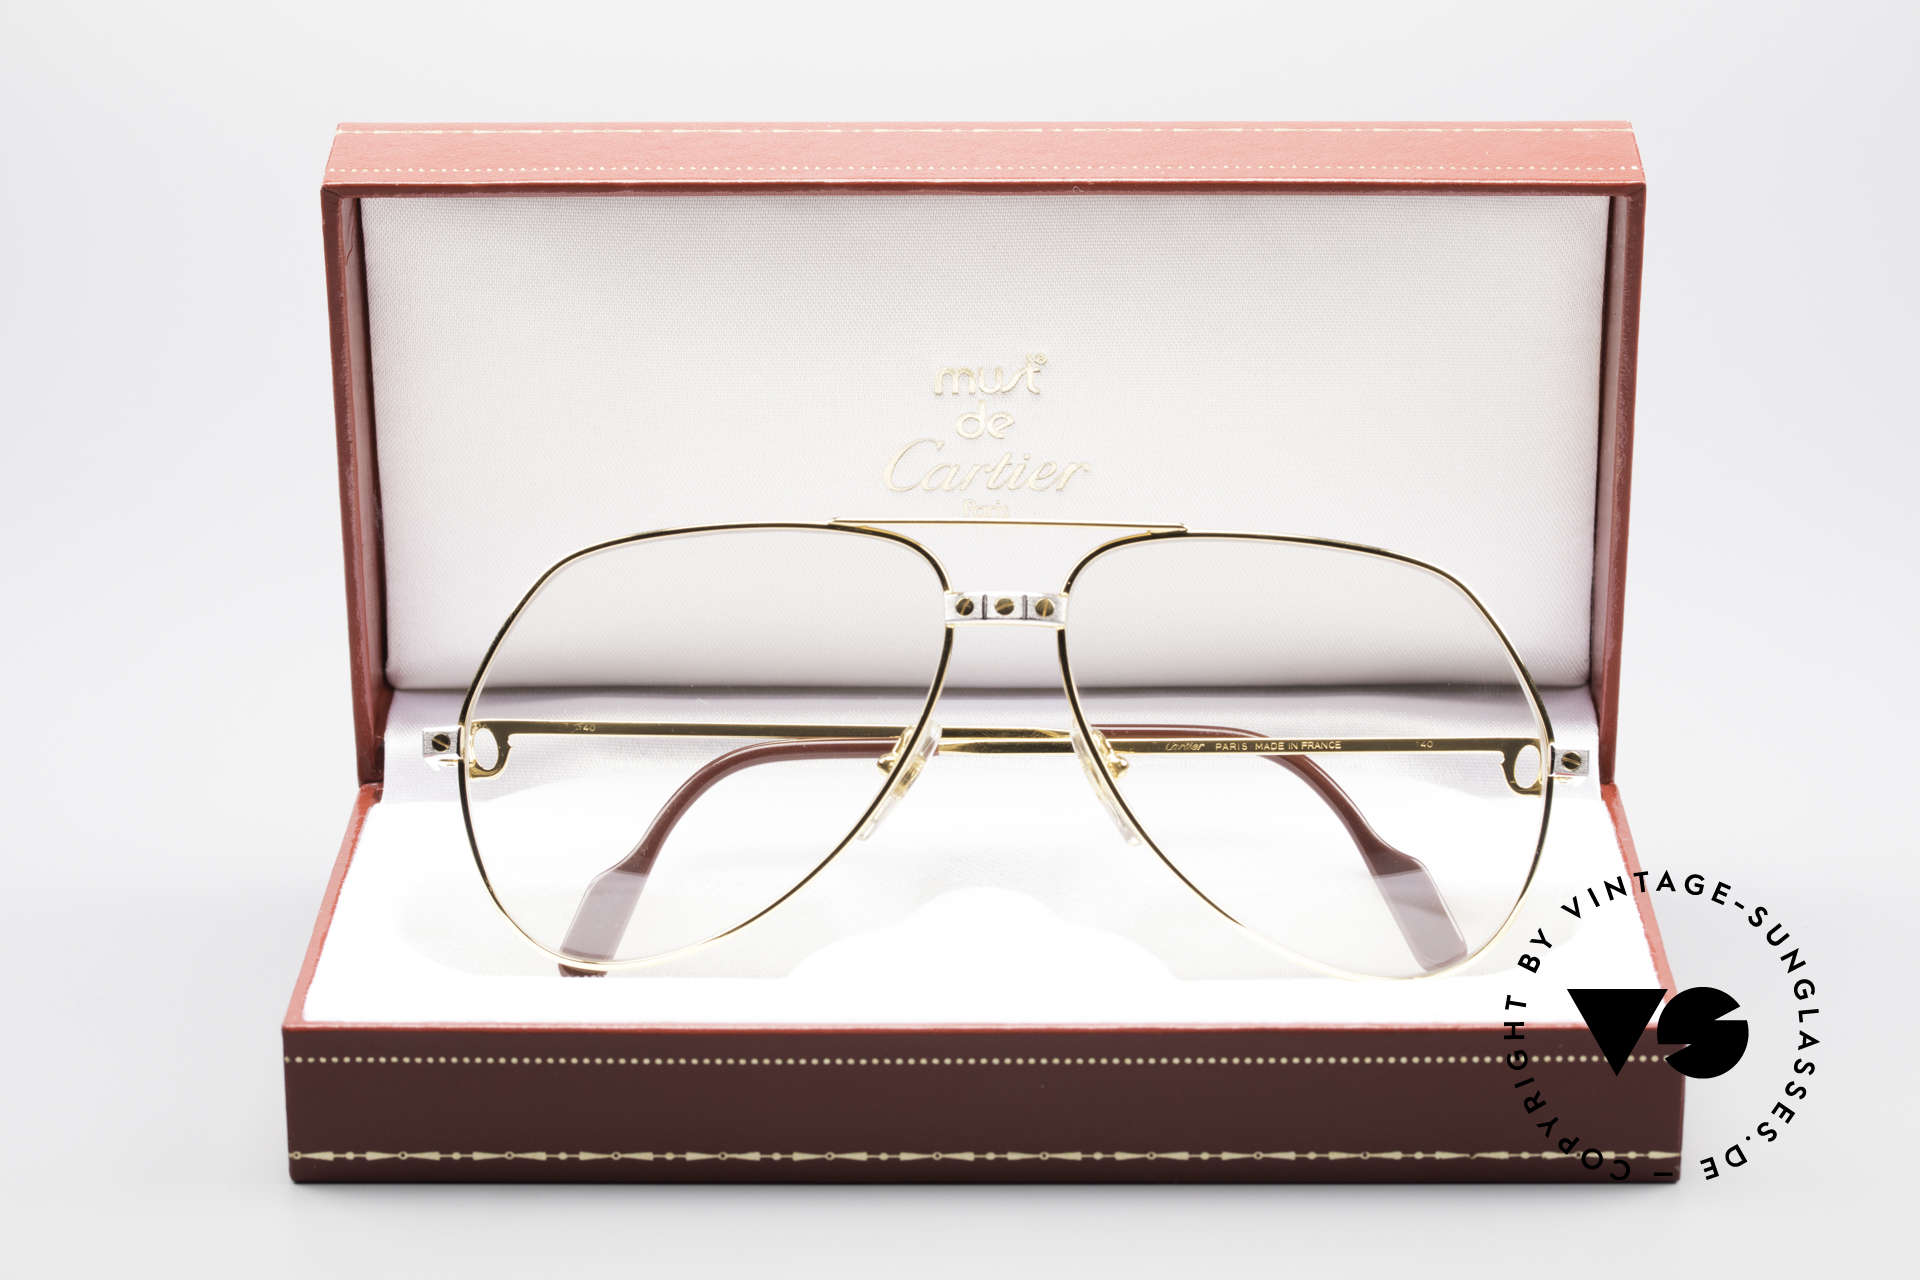 Cartier Vendome Santos - L Changeable Cartier Lenses, the lenses are darker in the sun and lighter in the shade, Made for Men